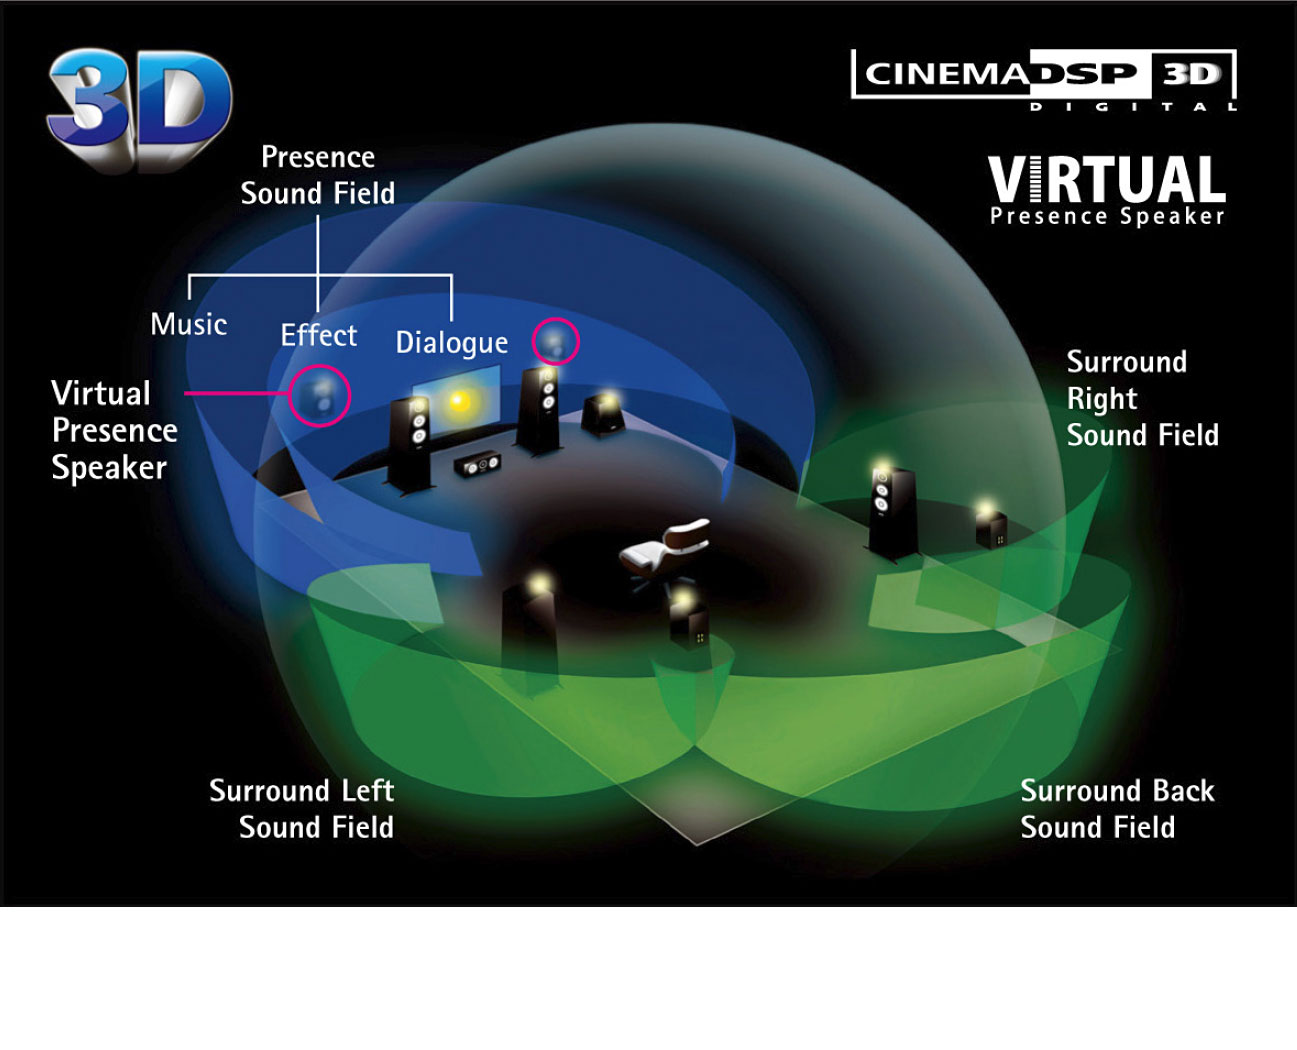 [ Surround Realism ] HD Audio with CINEMA DSP 3D and Virtual Presence Speaker